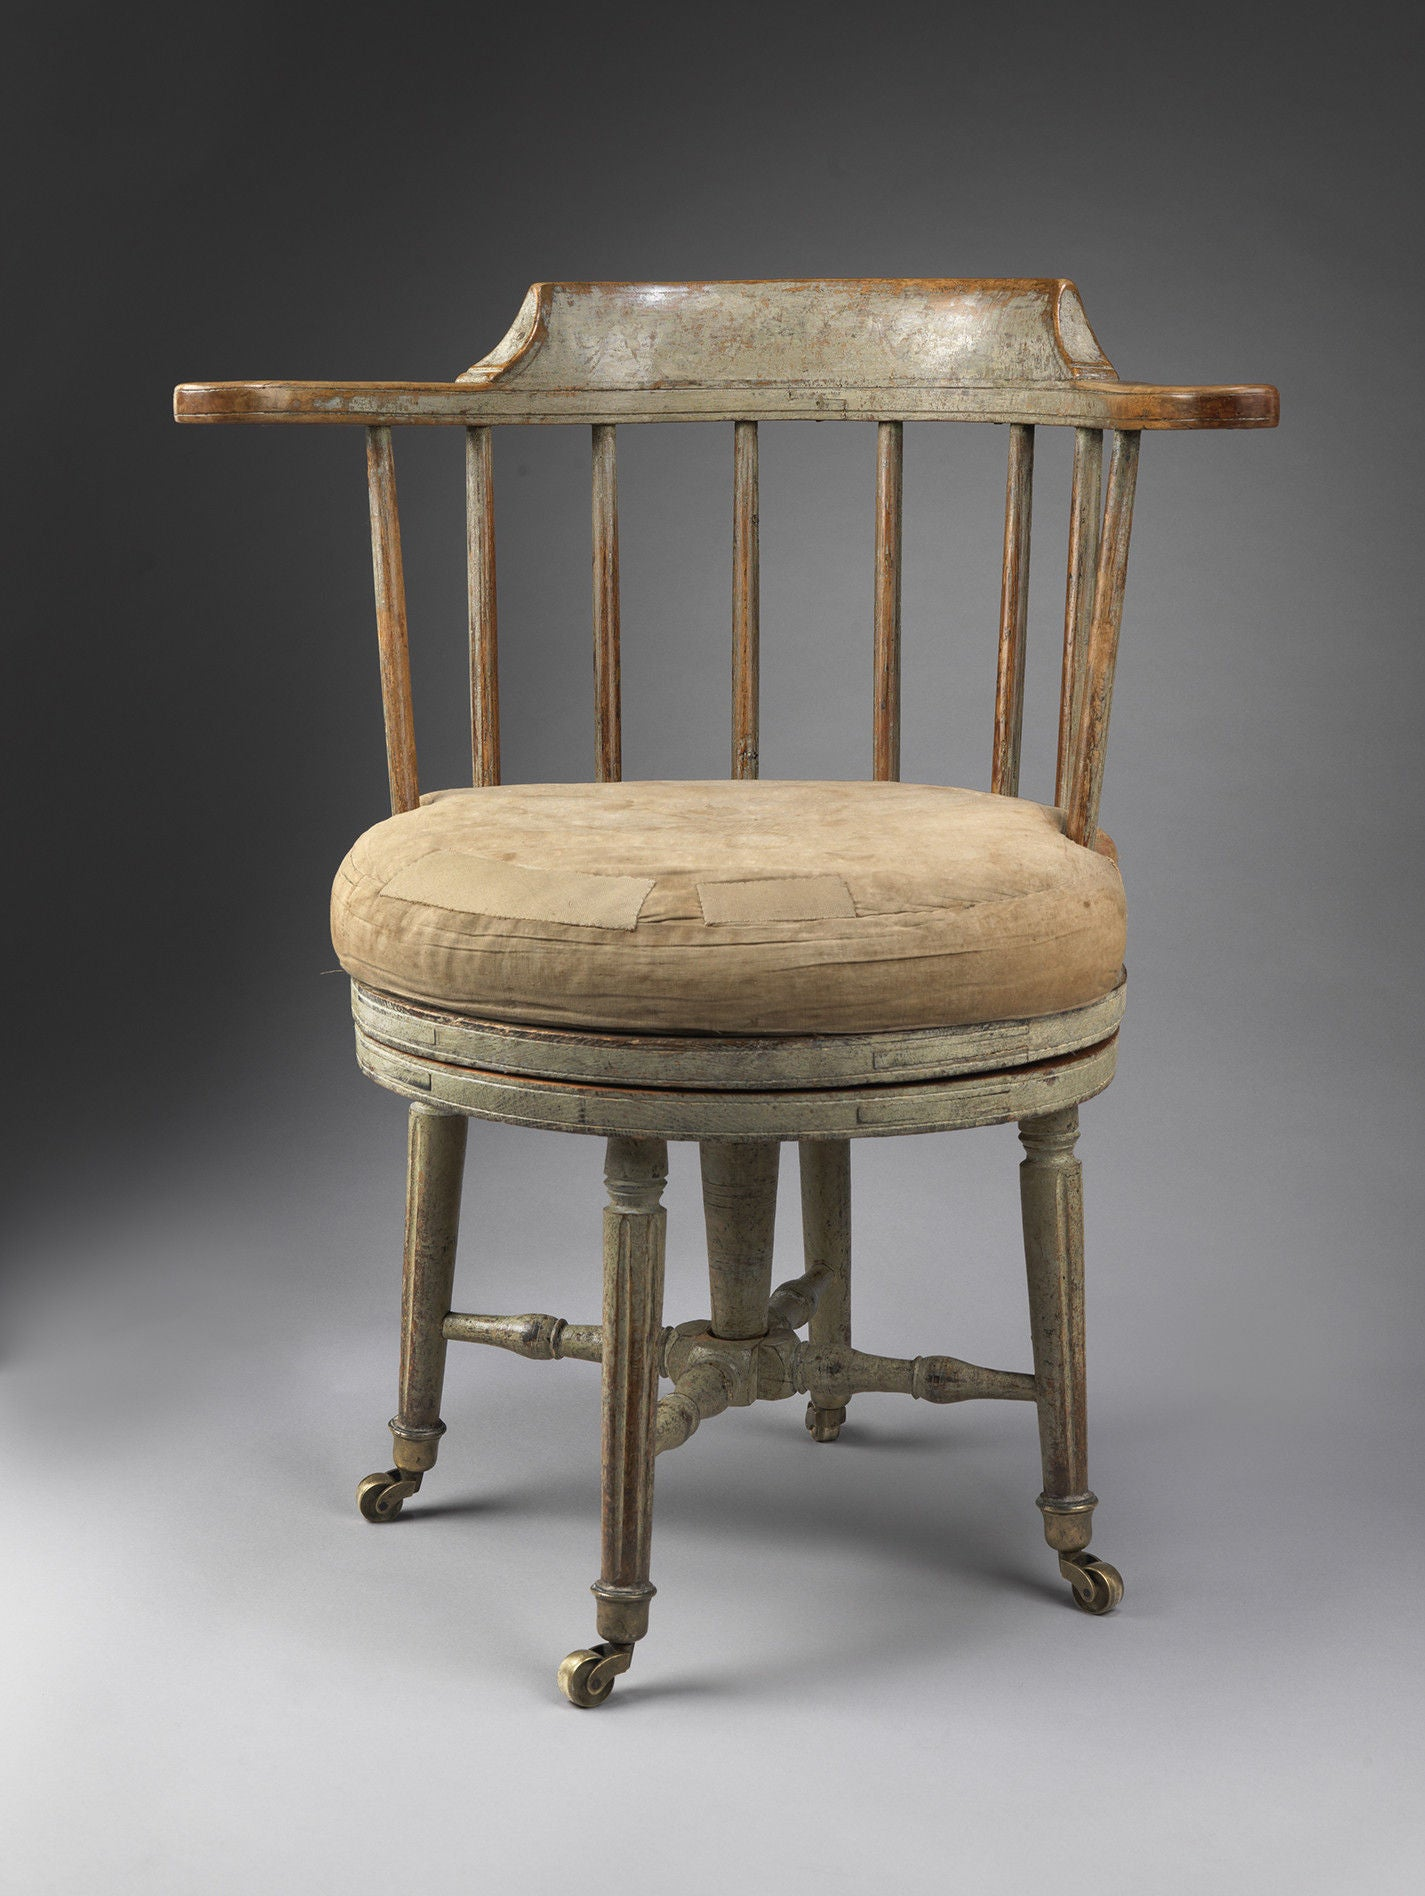 Remarkable Gustavian Period Revolving Desk Chair